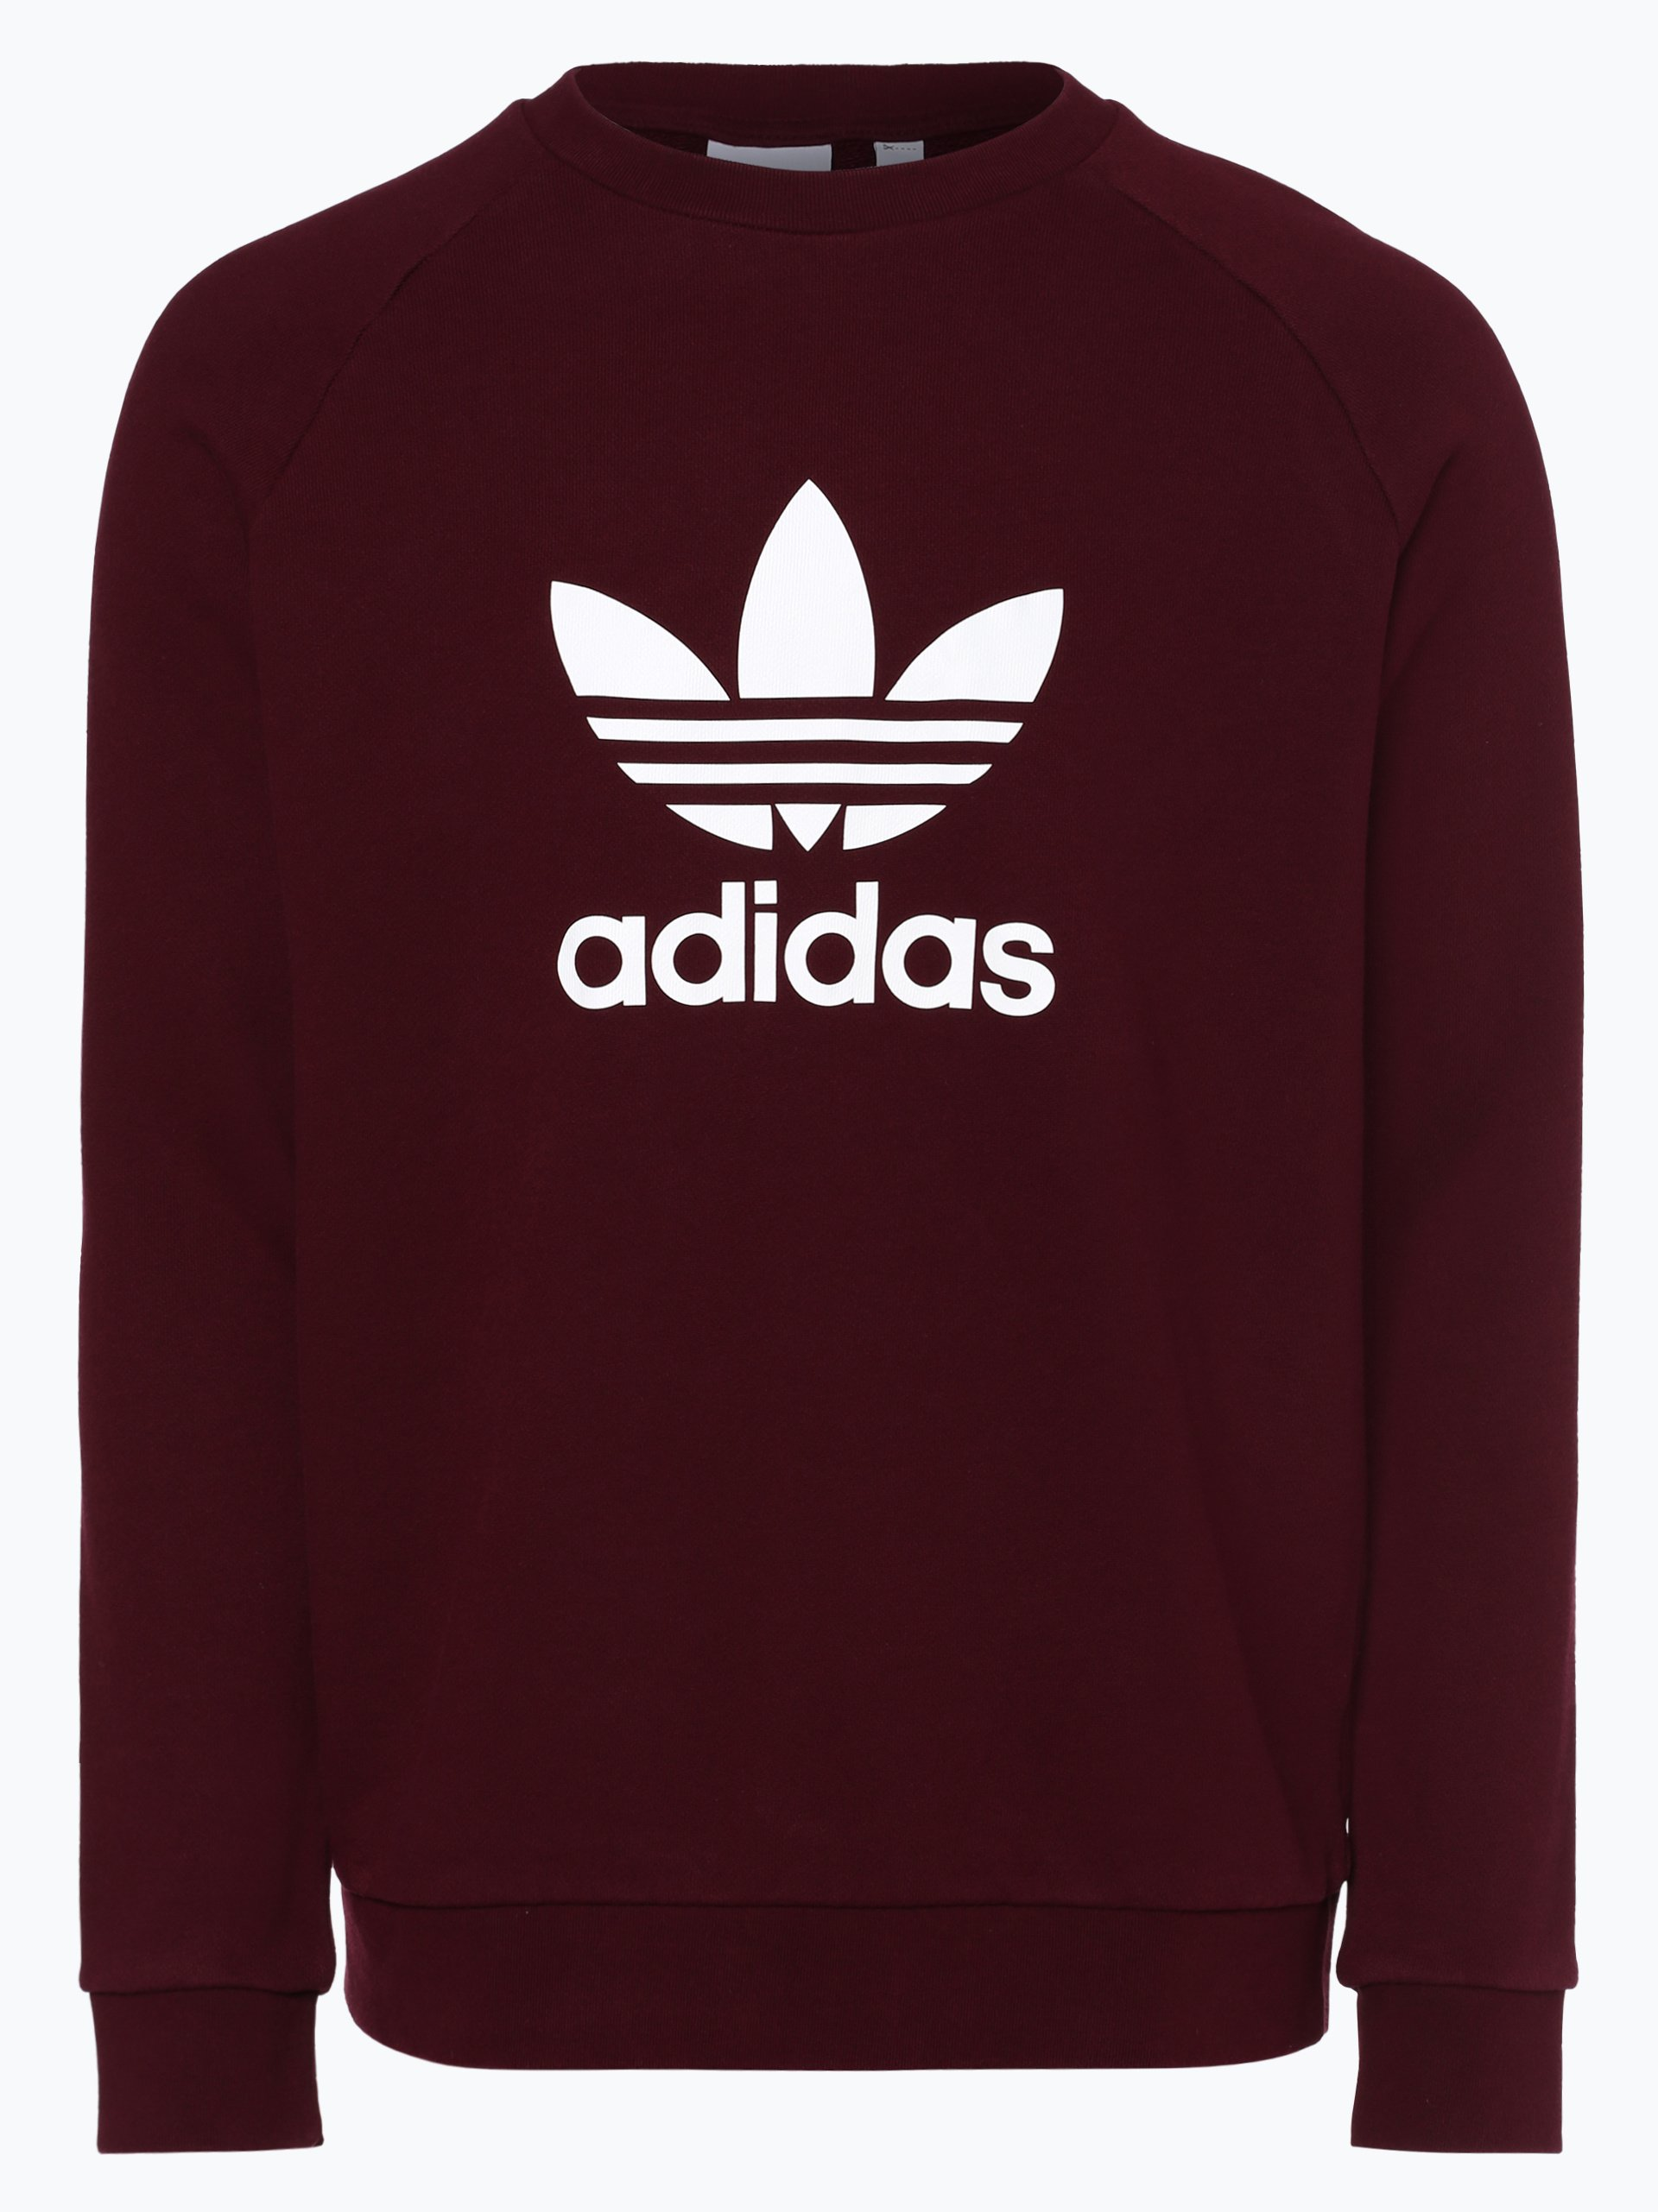 adidas Originals Herren Sweatshirt